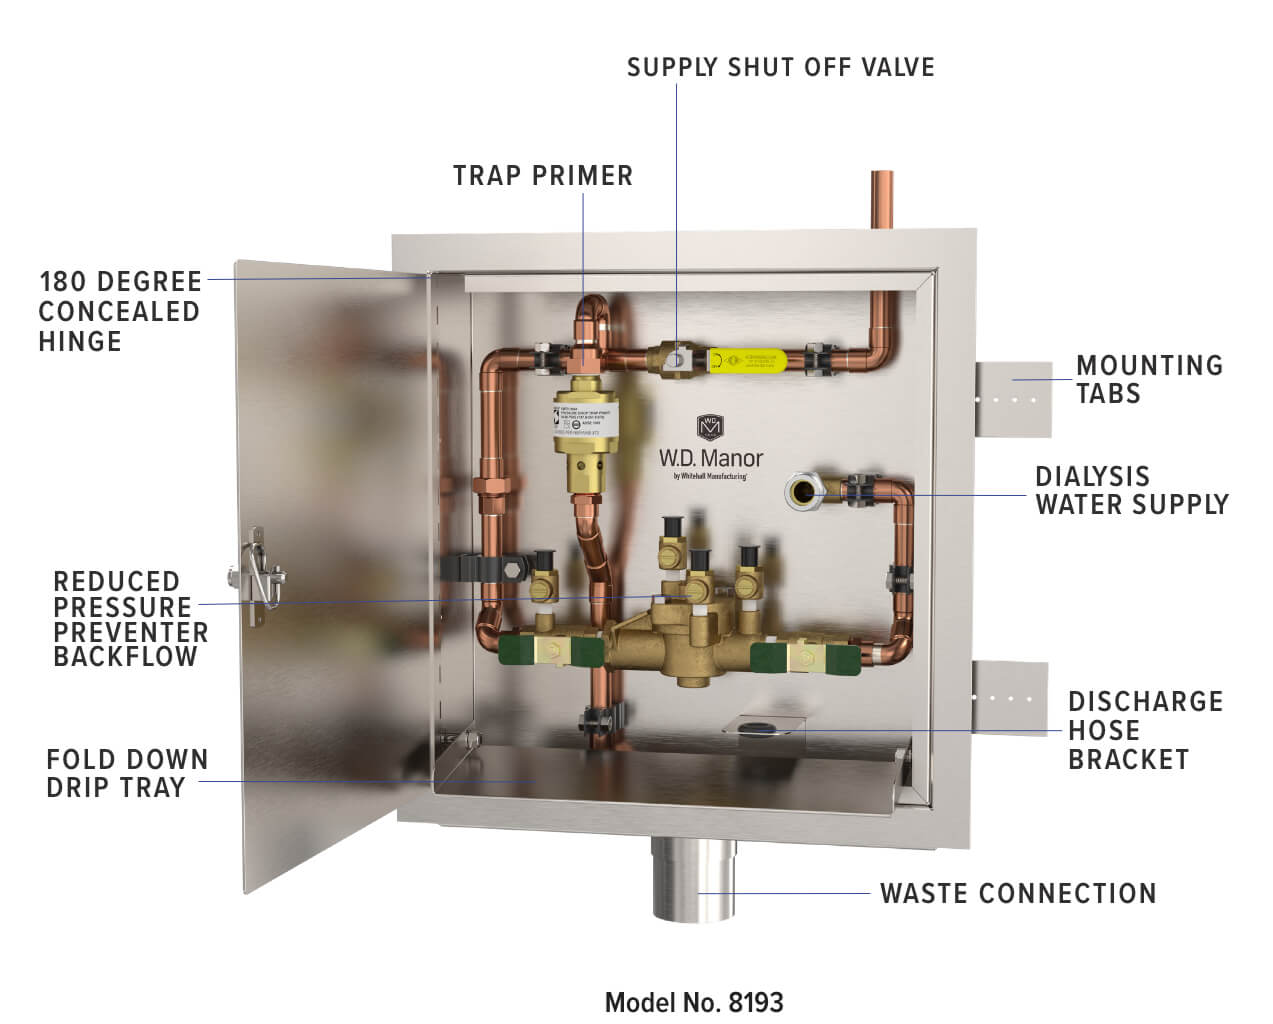 Dialysis Box with Backflow Preventer and Trap Primer Features